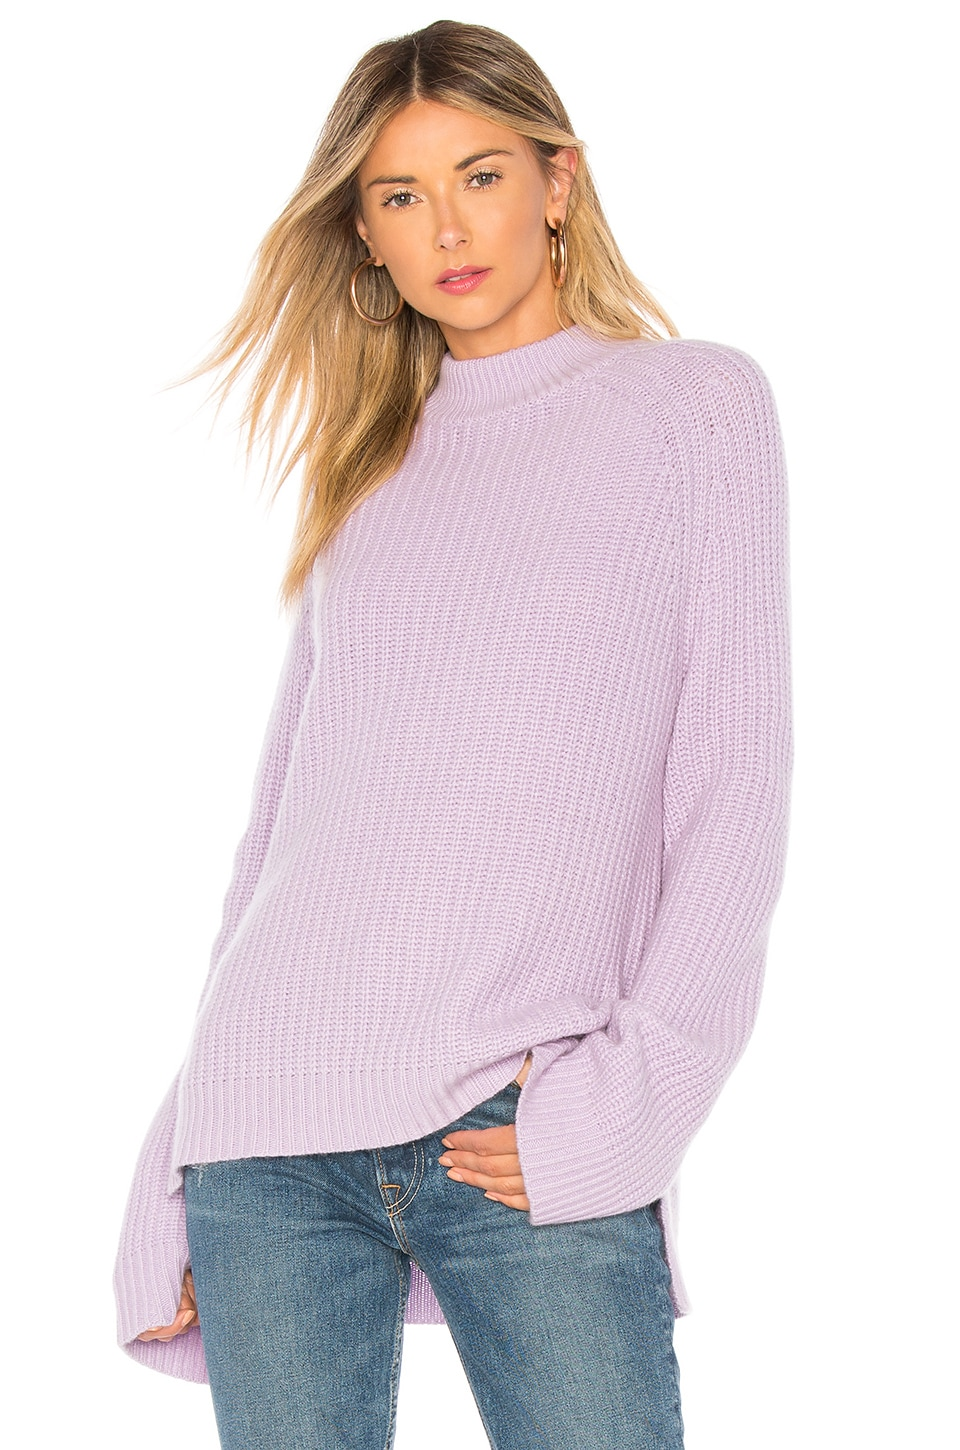 Autumn Cashmere Bell Sleeve Sweater in Lavender